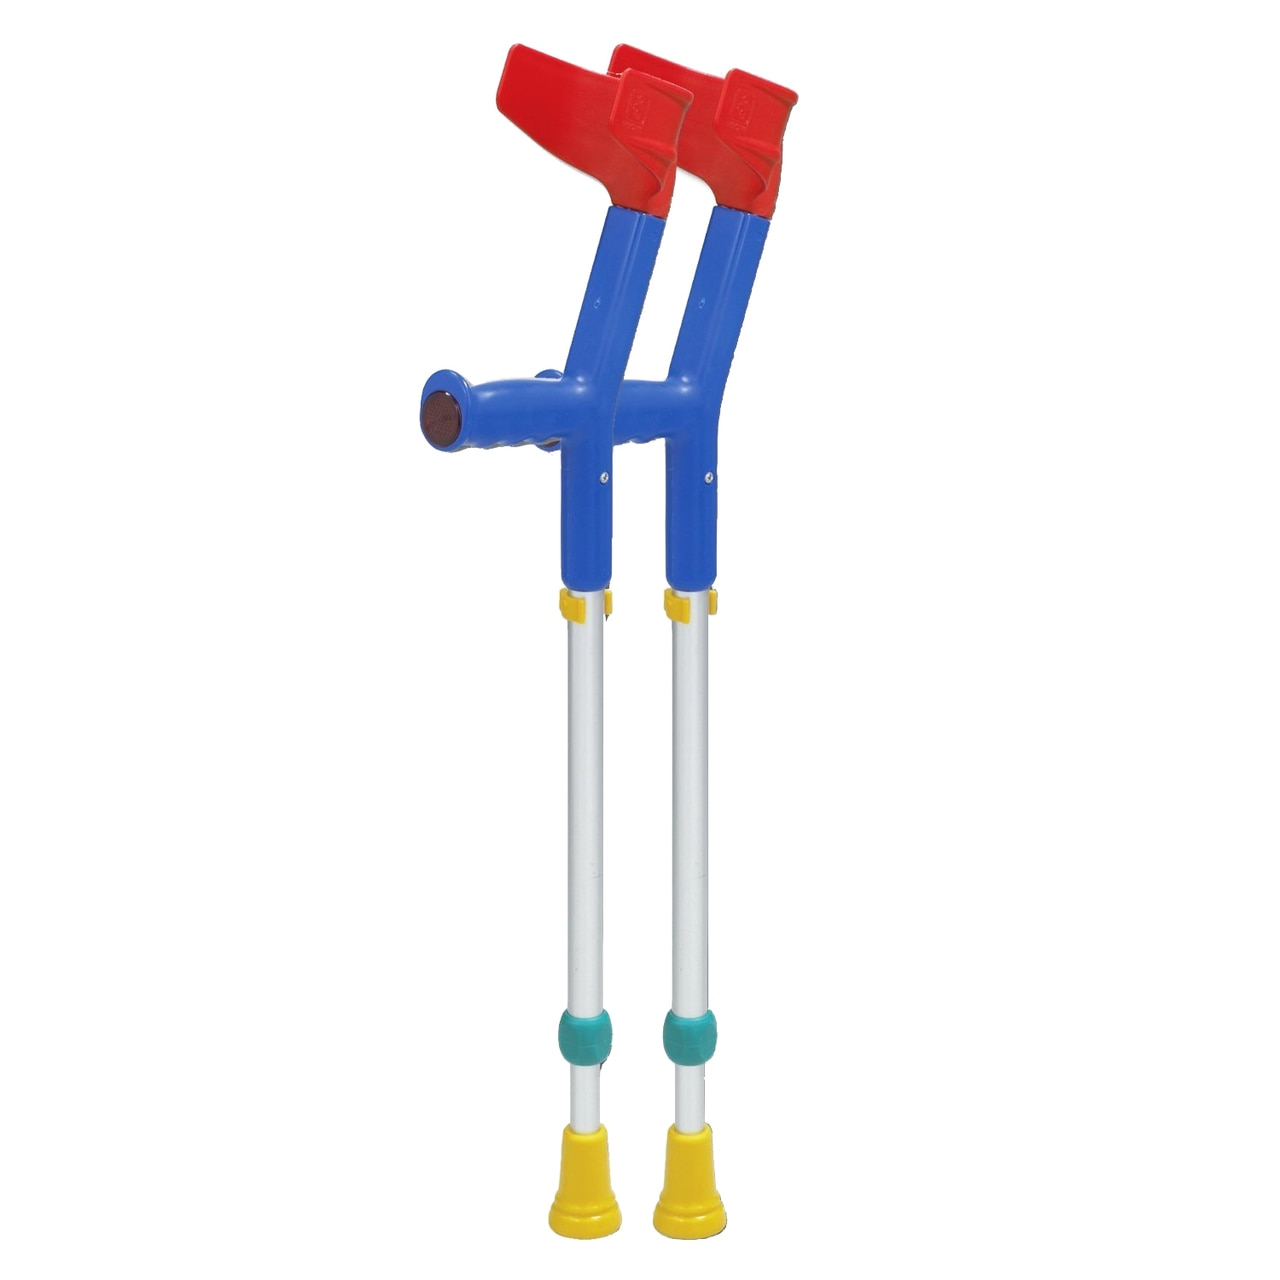 Fun-Kids Children's Crutches (Pair)